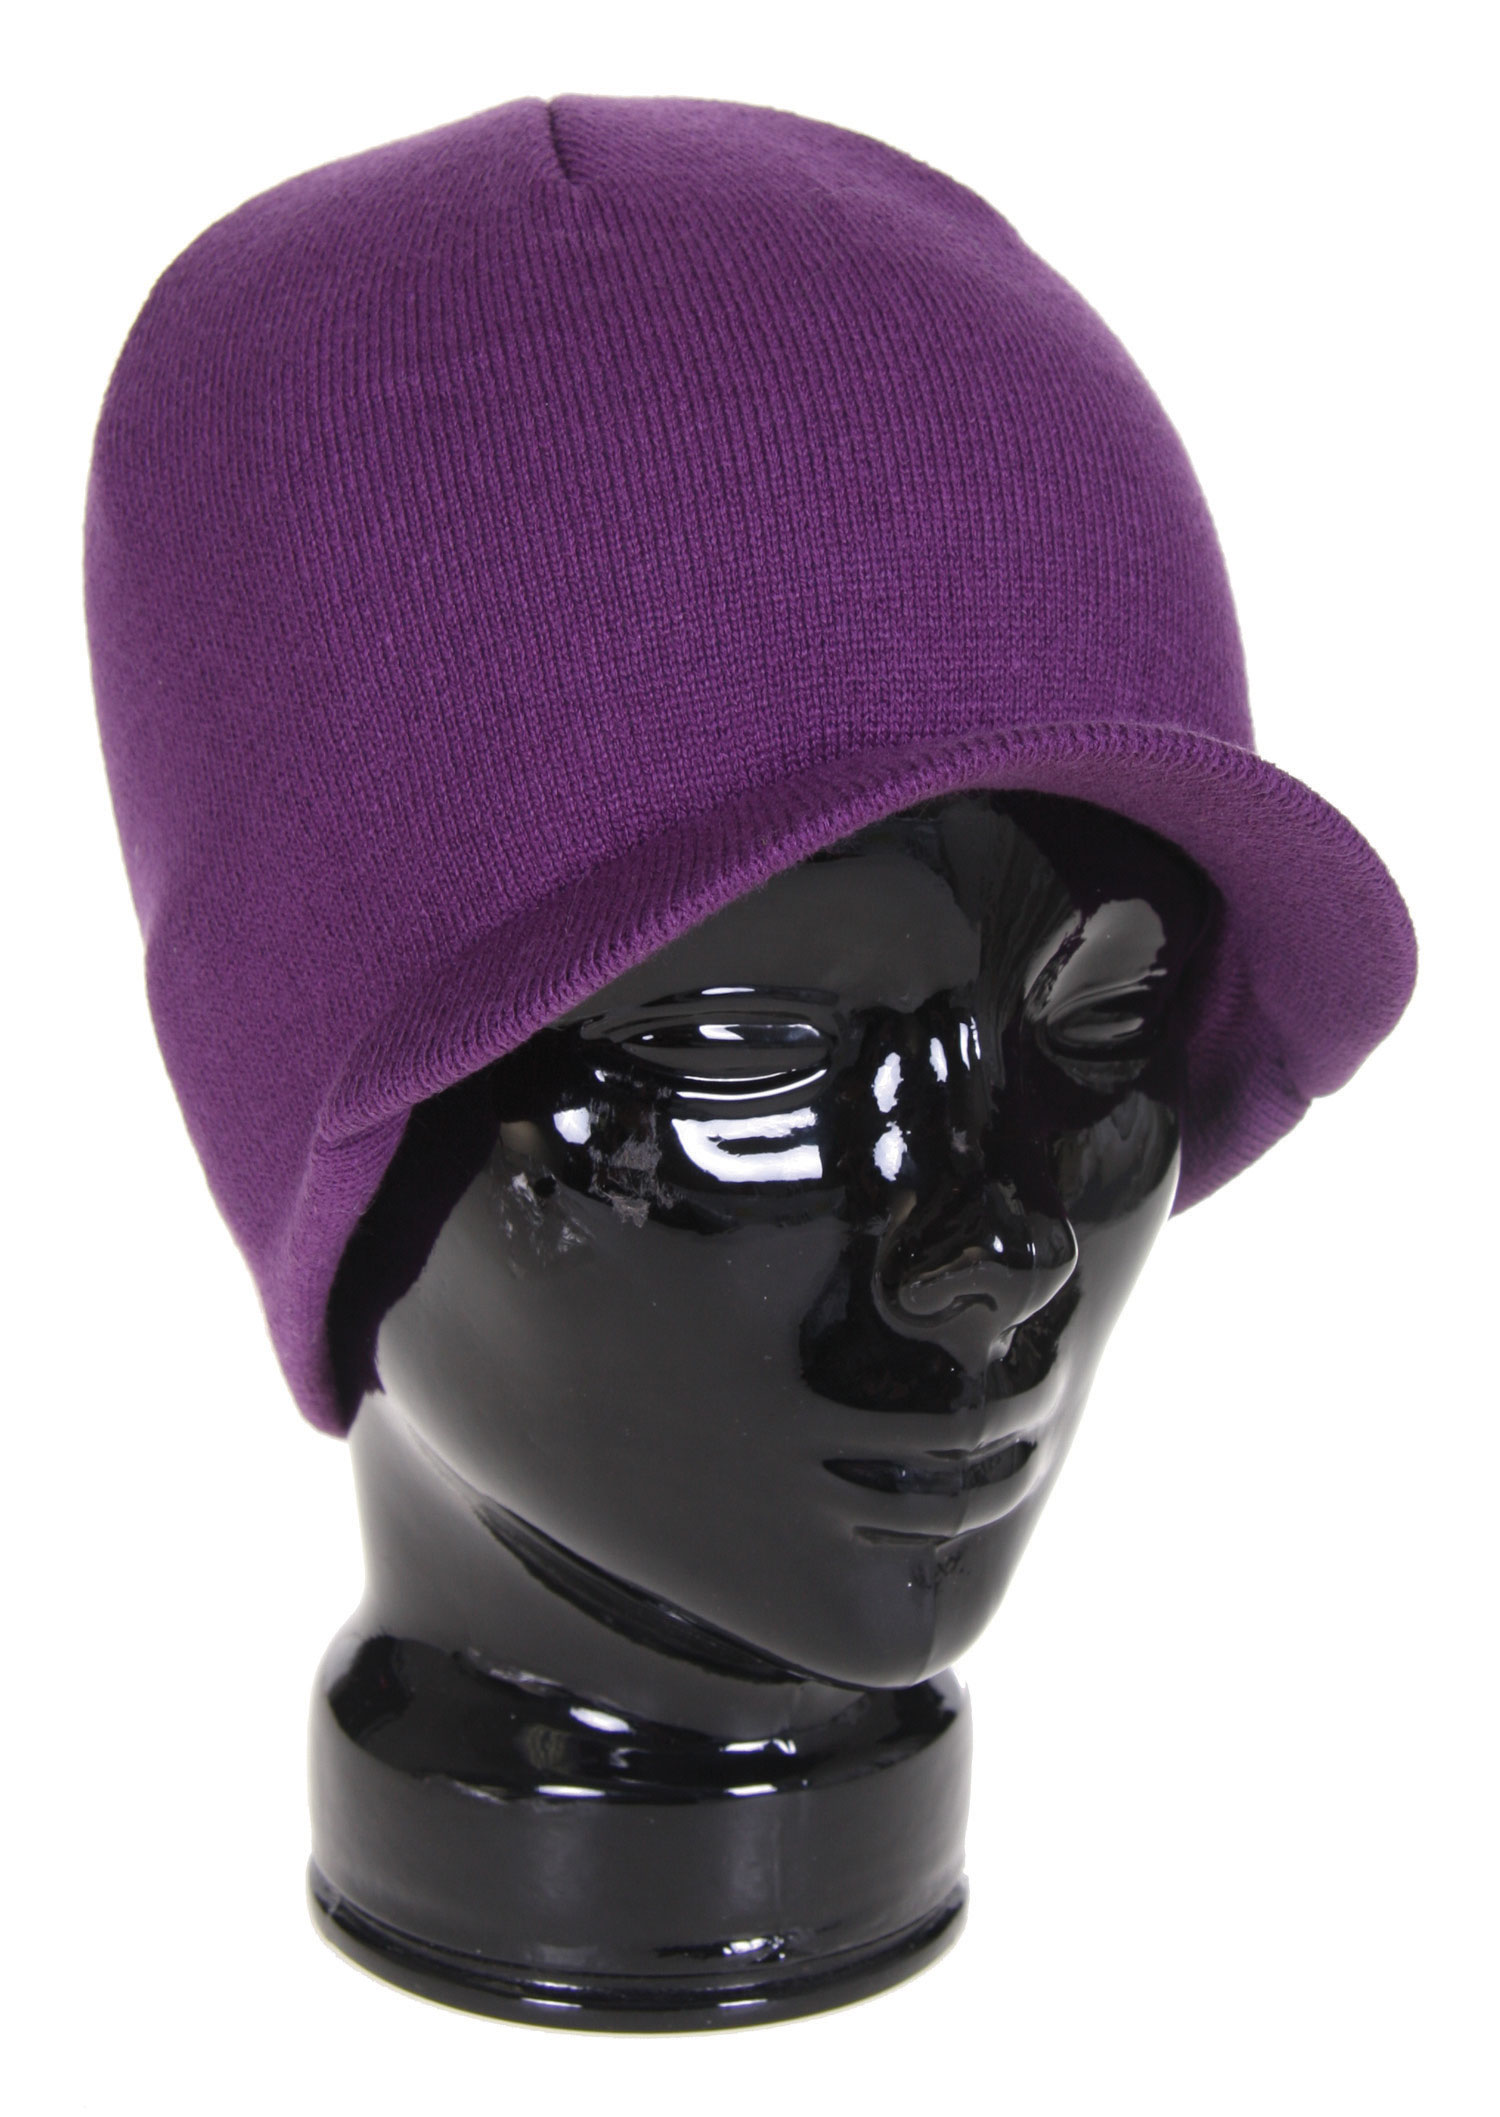 The Special Blend Icon Visor Beanie - 100% Soft Acrylic / Machine Knit / One Size Fits All - $7.95